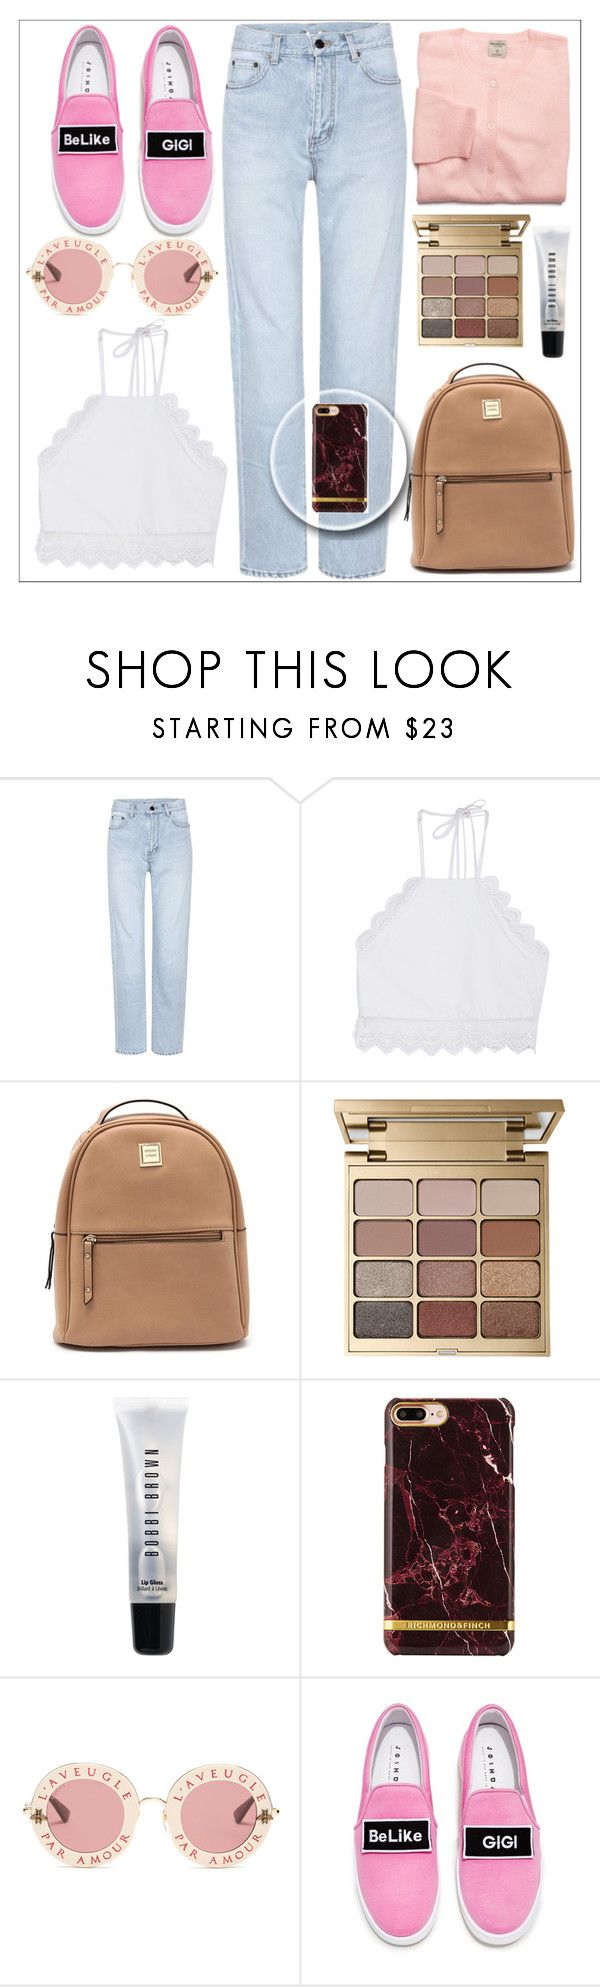 """""""make your life easier!!"""" by juhibeiber ❤ liked on Polyvore featuring Yves Saint Laurent, Front Row Shop, Stila, Bobbi Brown Cosmetics, Gucci and Joshua's"""